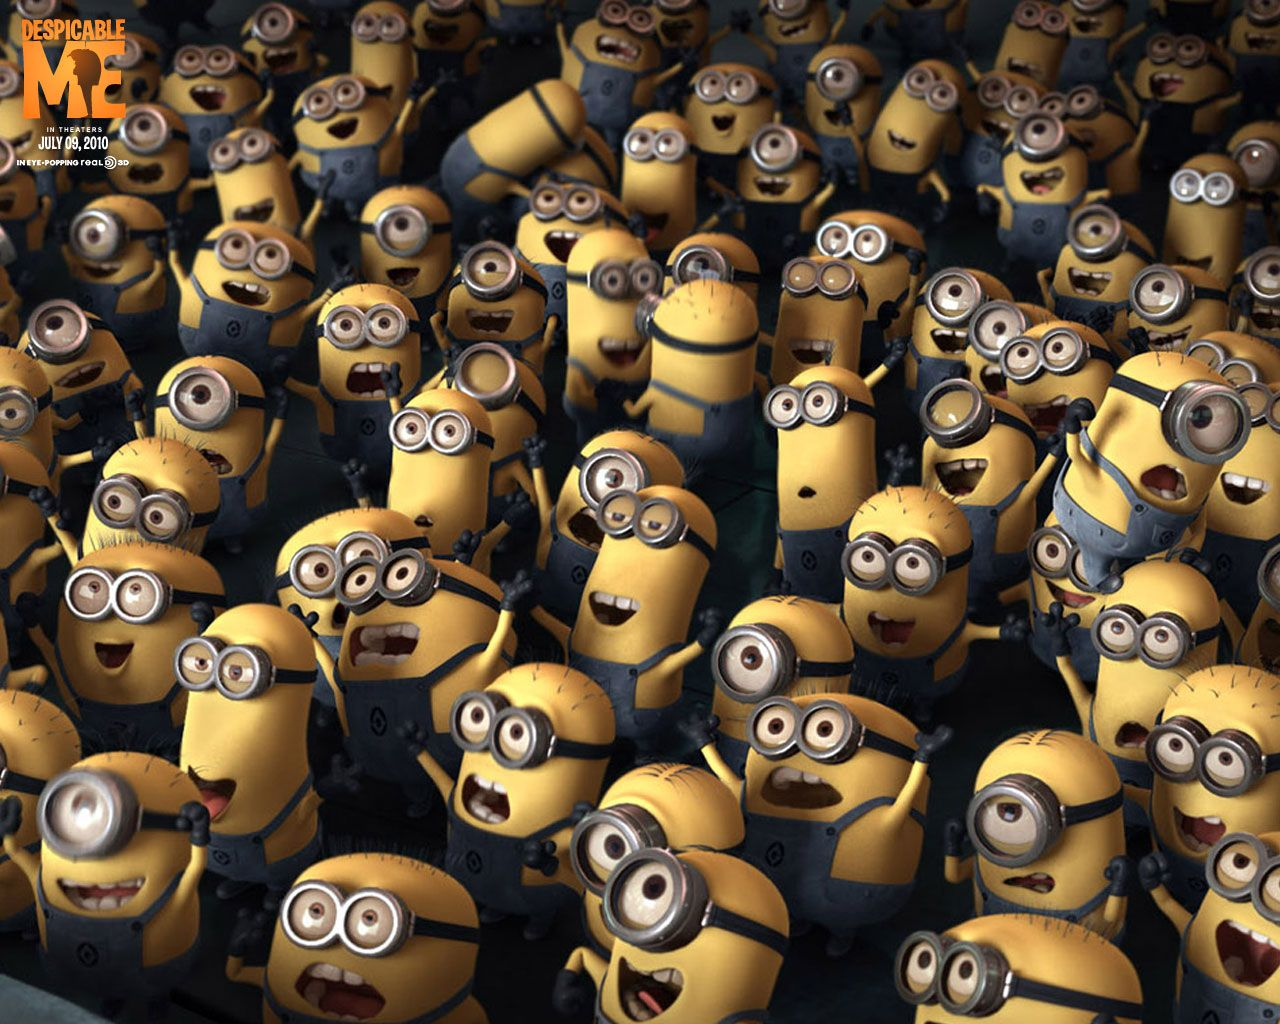 Despicable me despicable me wallpaper gallery movie wallpapers despicable me minion crowd hd wallpaper in full hd from the movies tv category tags crowd despicable me minions voltagebd Image collections